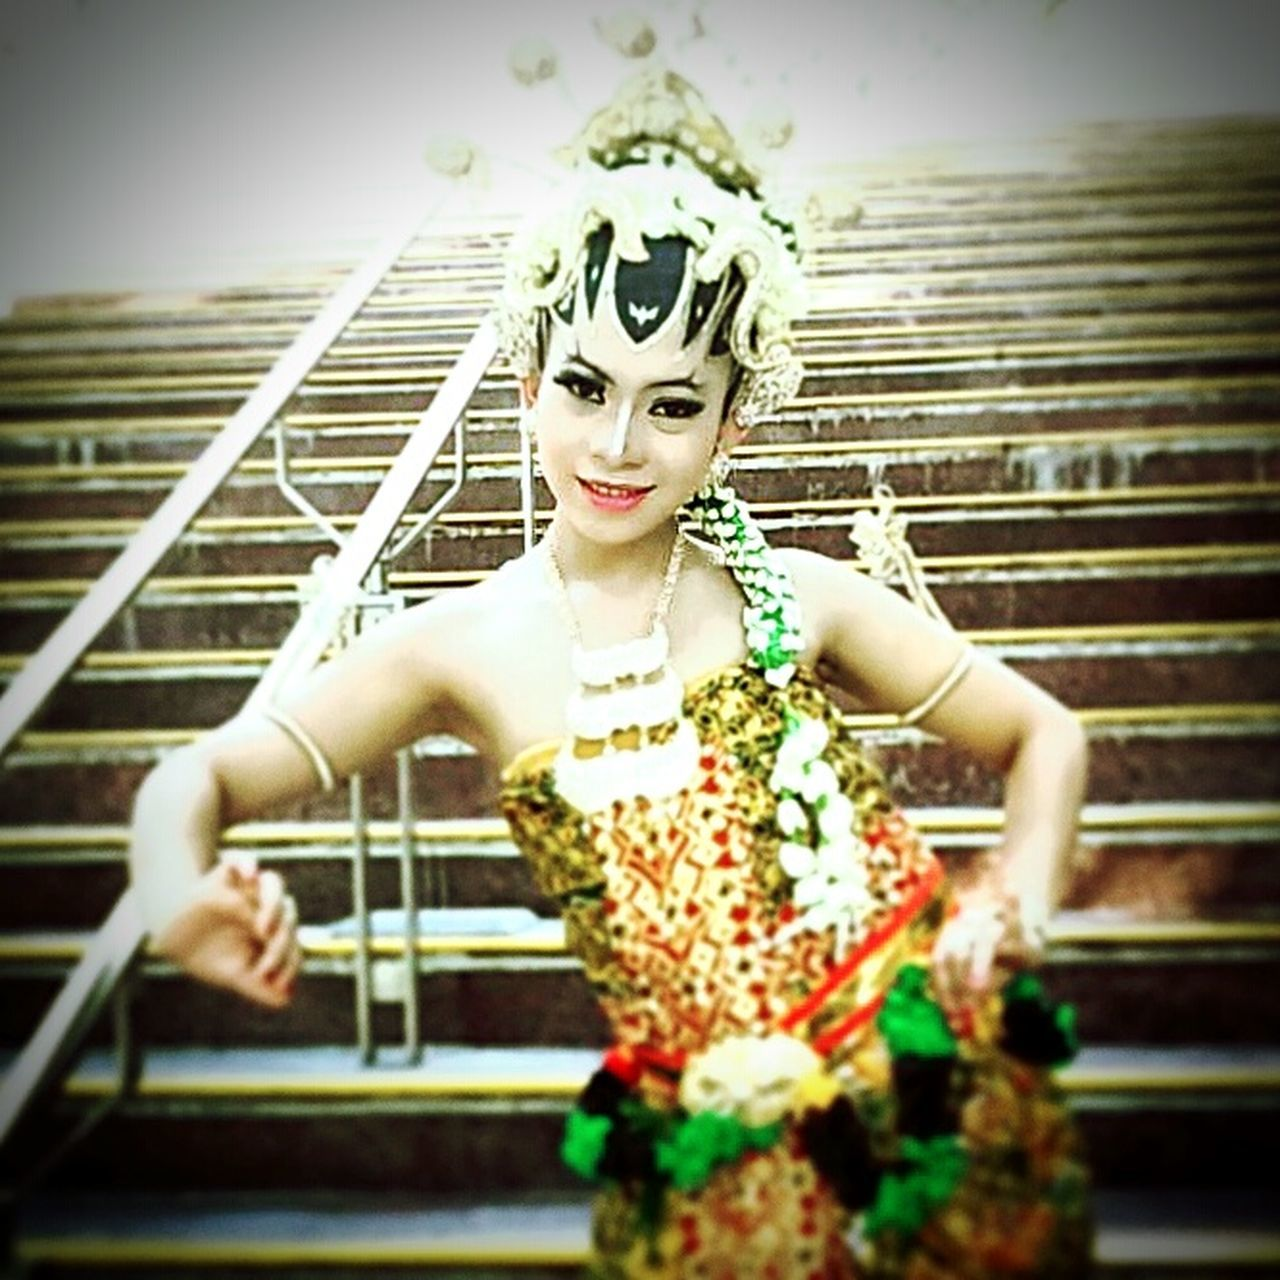 love indonesia First Eyeem Photo EyeEmNewHere Only Women Wedding Dress Indonesia Traditional Indonesian Photographers Collection Indonesiaku1 Indonesia Culture